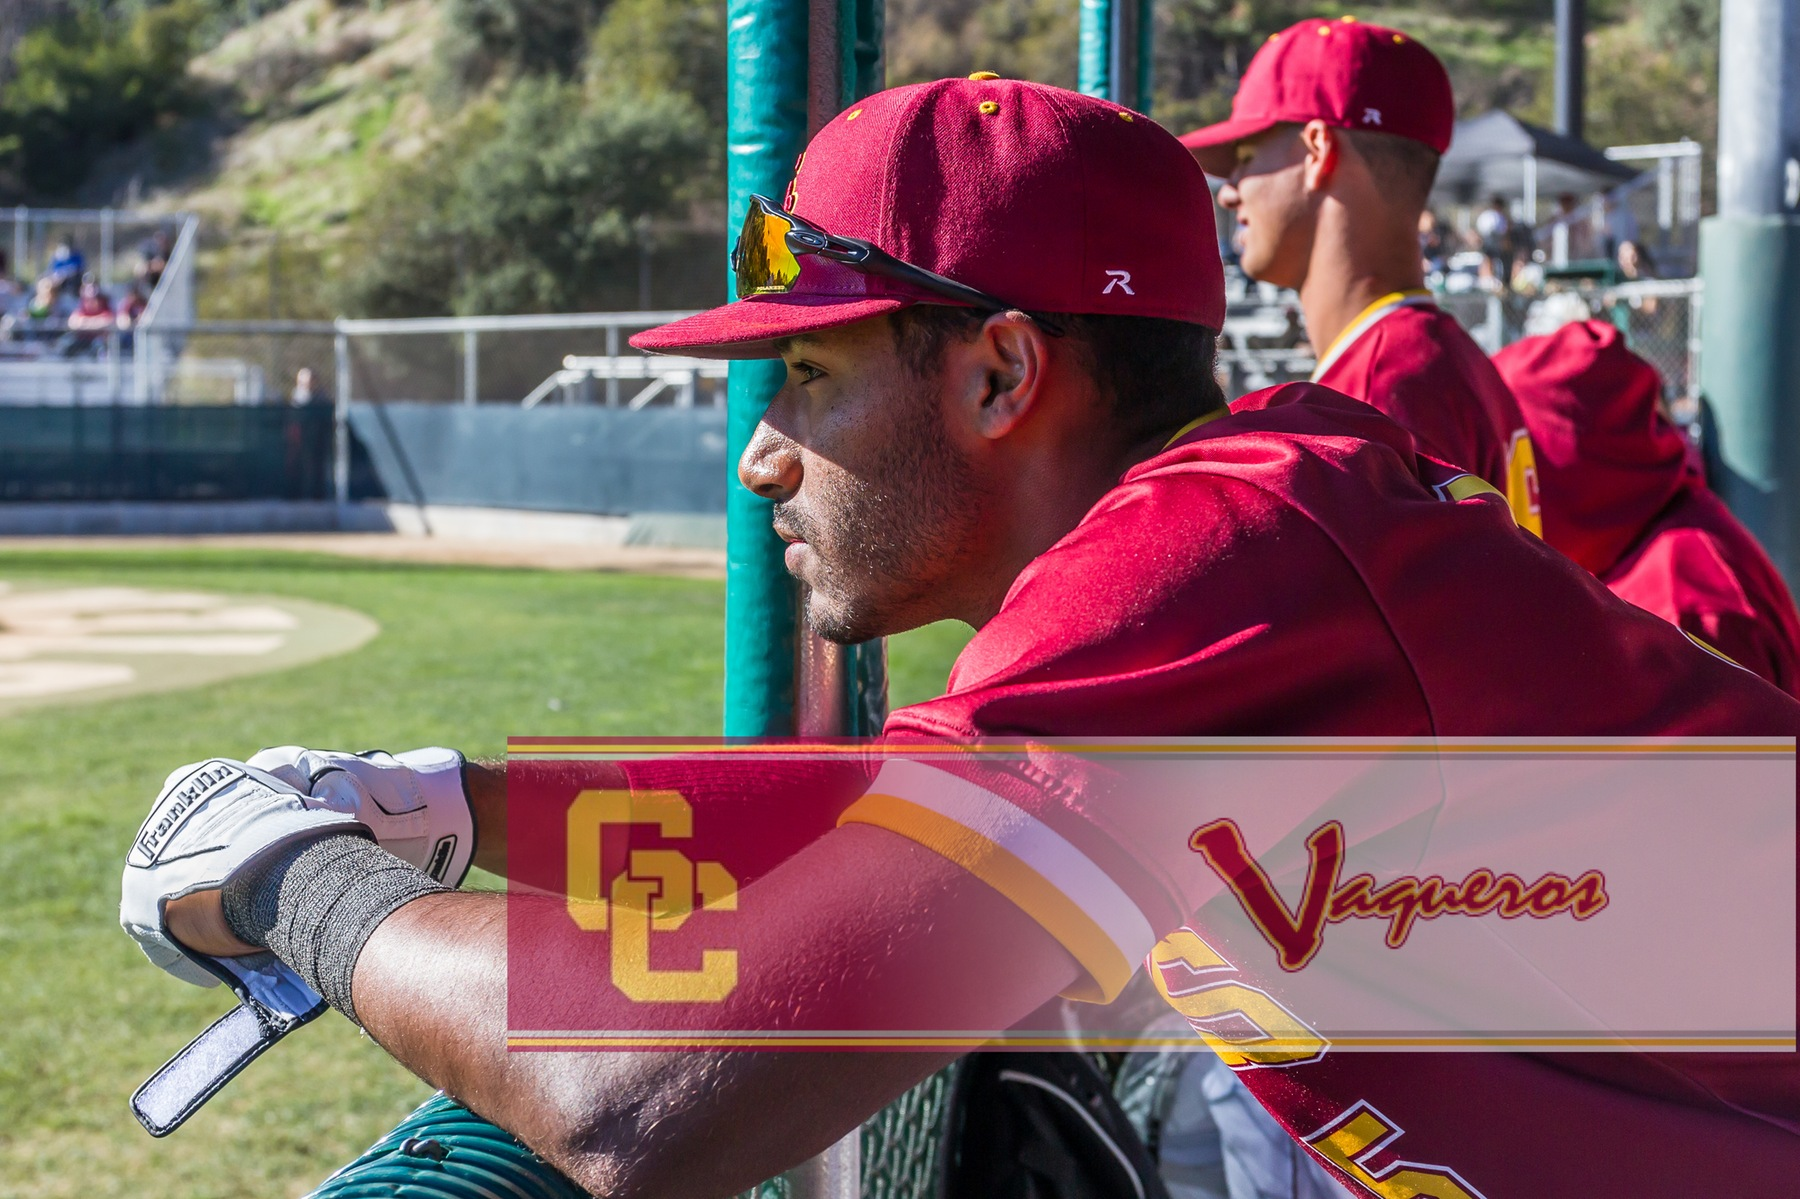 Brandon Lewis helps Vaqs to fifth straight wins over Grossmont and Oxnard